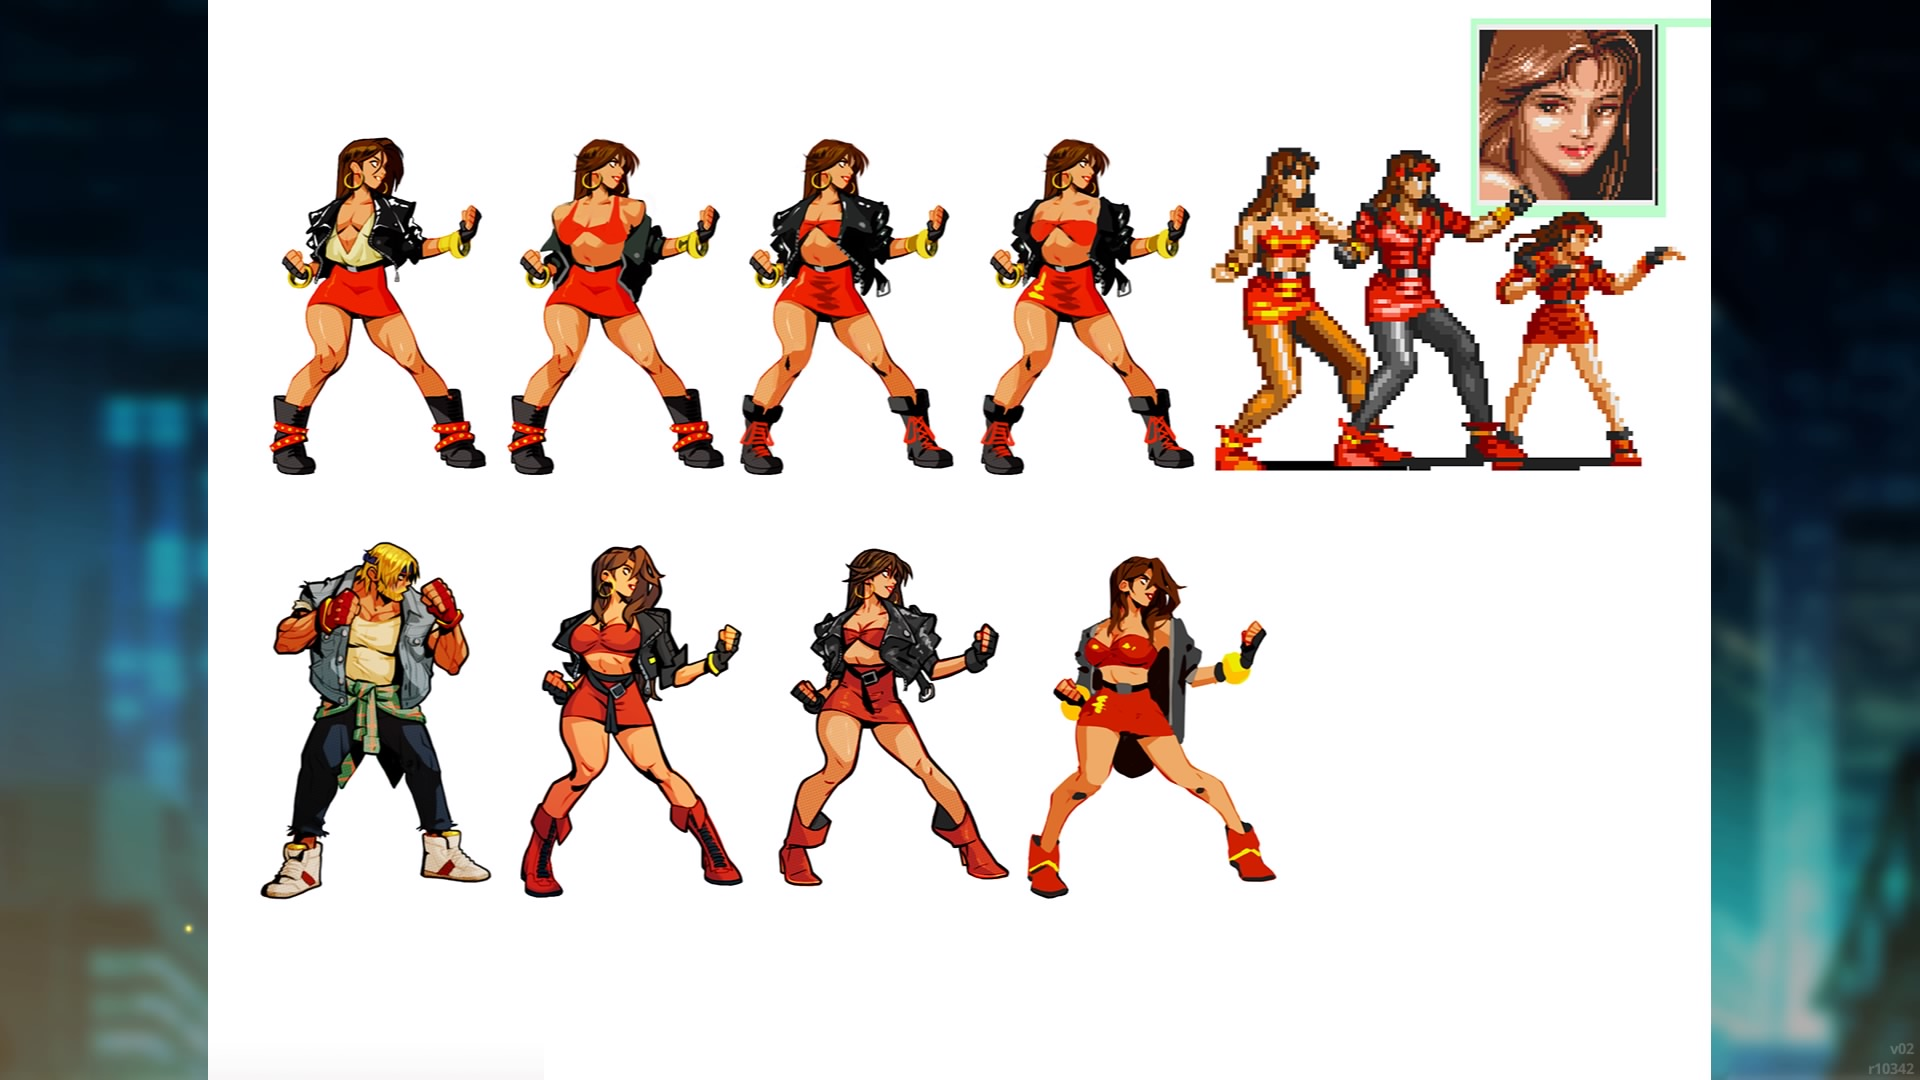 StreetsofRage4 PS4 Test 017